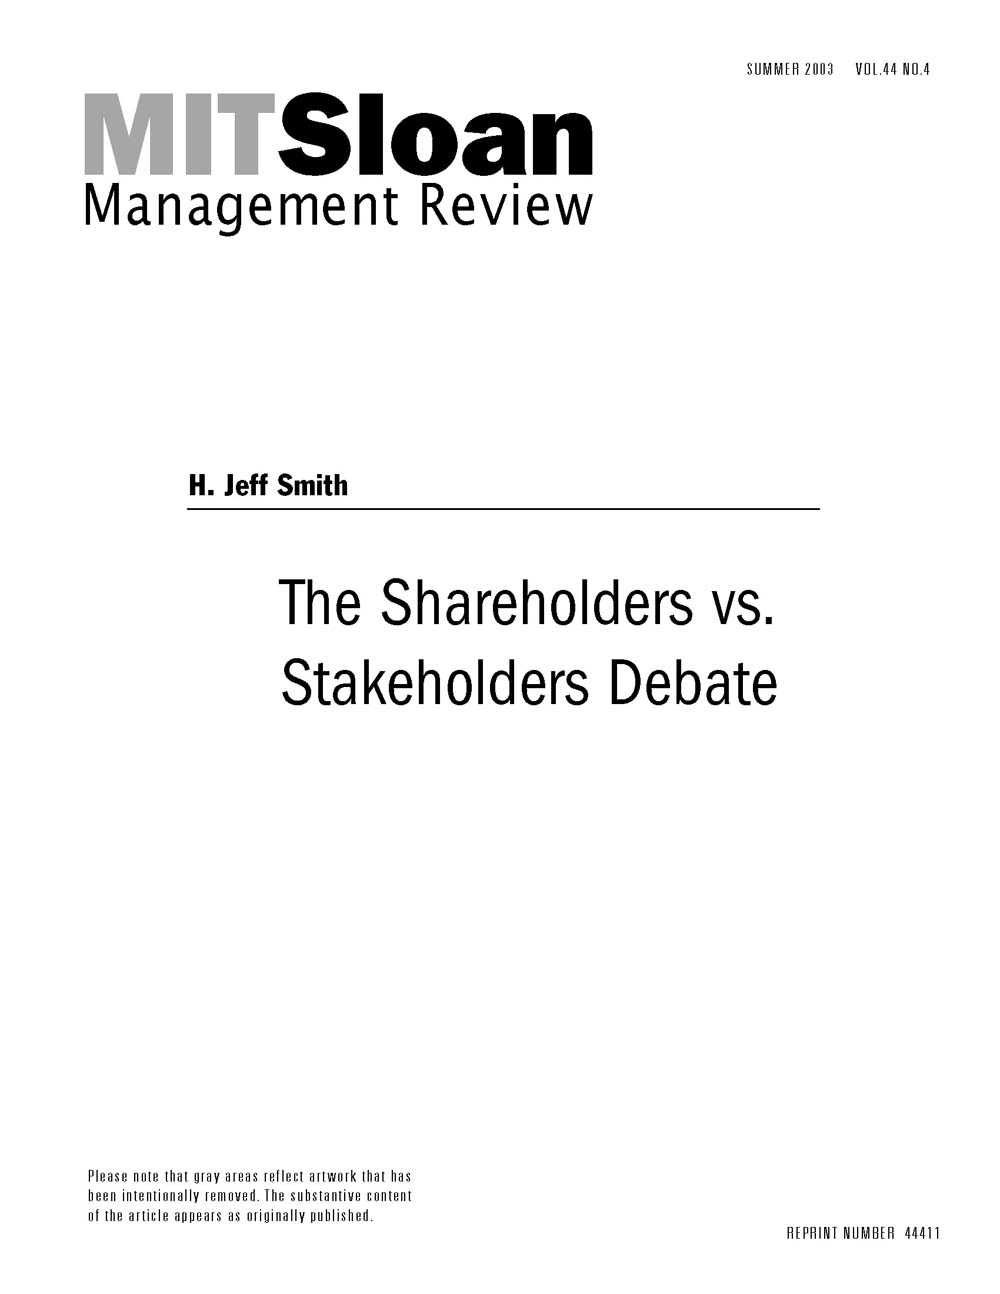 stockholder vs stakeholder Shareholders are always stakeholders in a corporation, but stakeholders are not always shareholders what is the difference between a shareholder and a stakeholder.